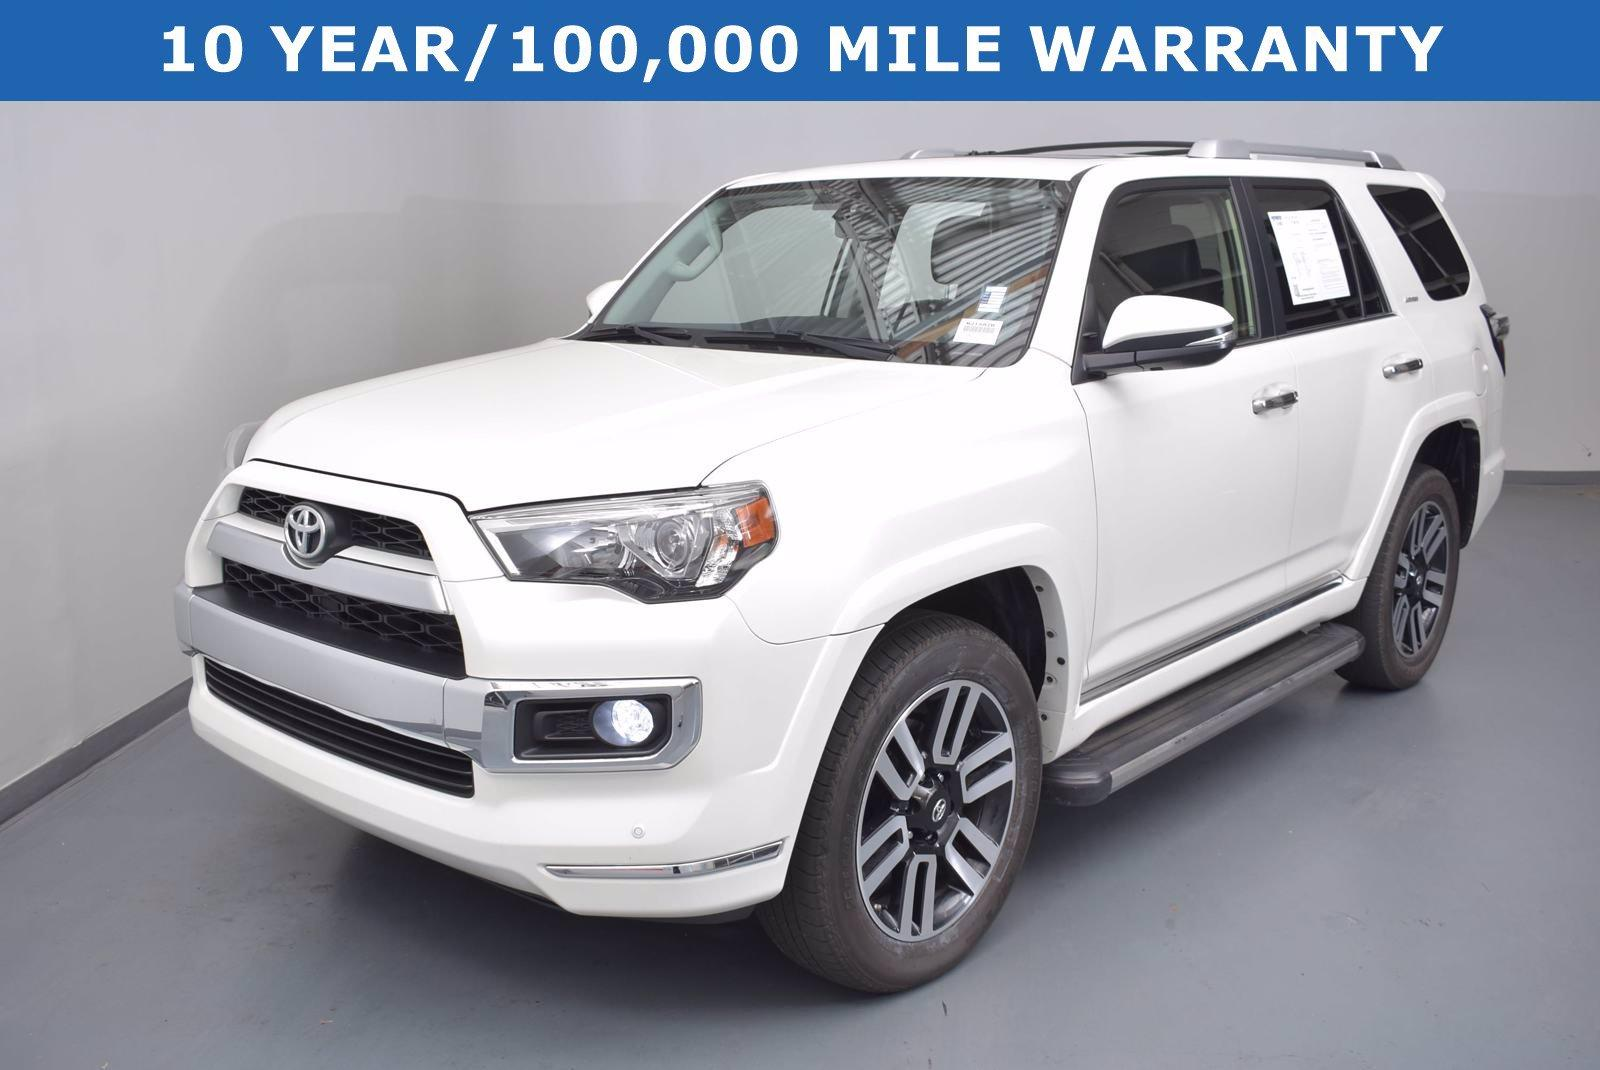 2018 Toyota 4Runner Vehicle Photo in Cary, NC 27511